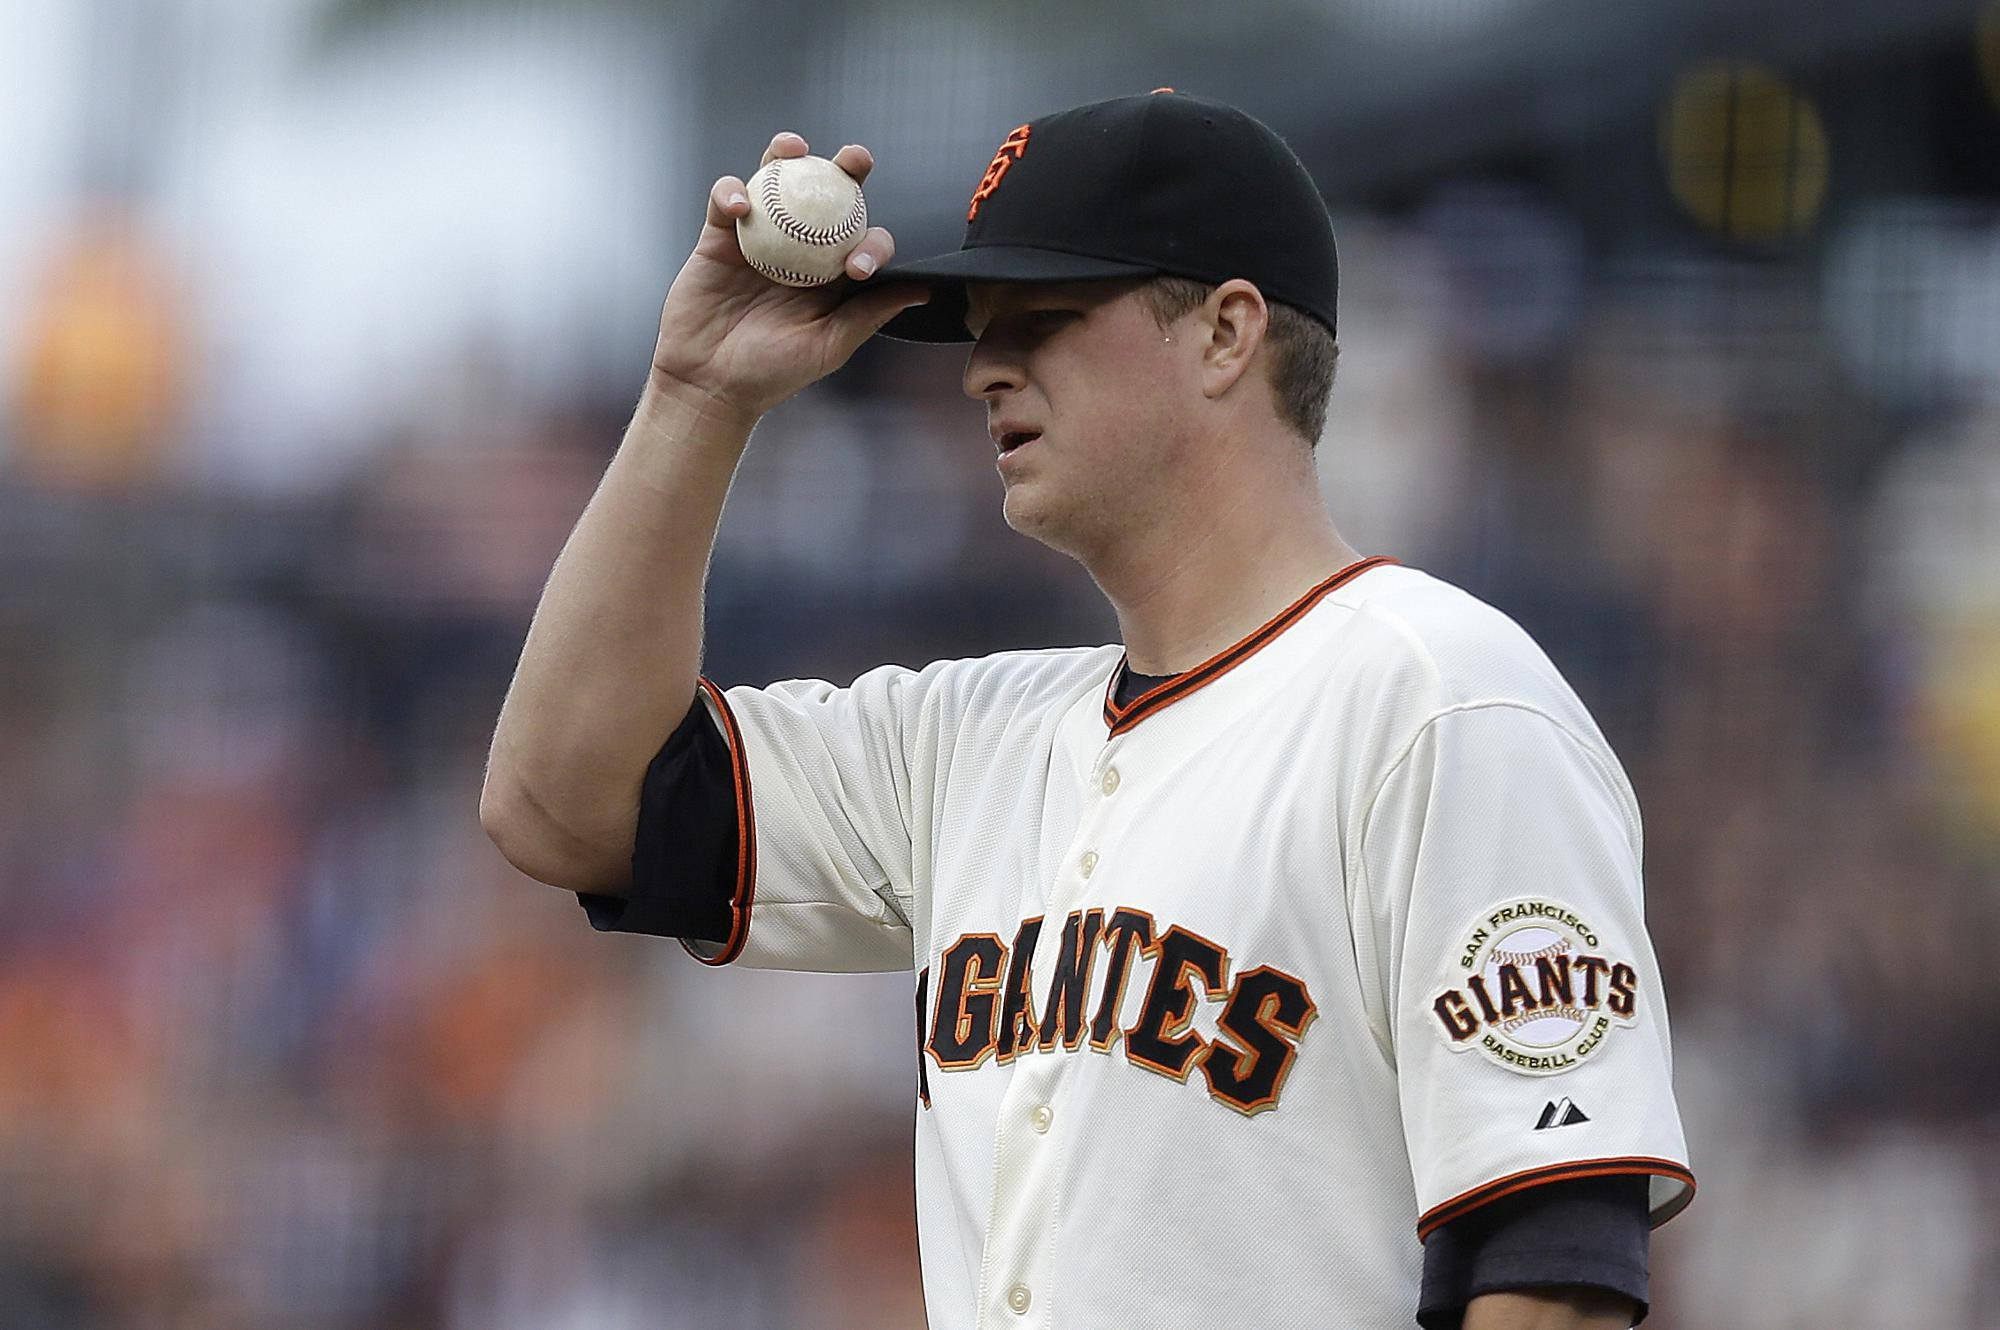 Associated PressSan Francisco Giants' Matt Cain adjusts his cap in the first inning of a baseball game against the Los Angeles Dodgers